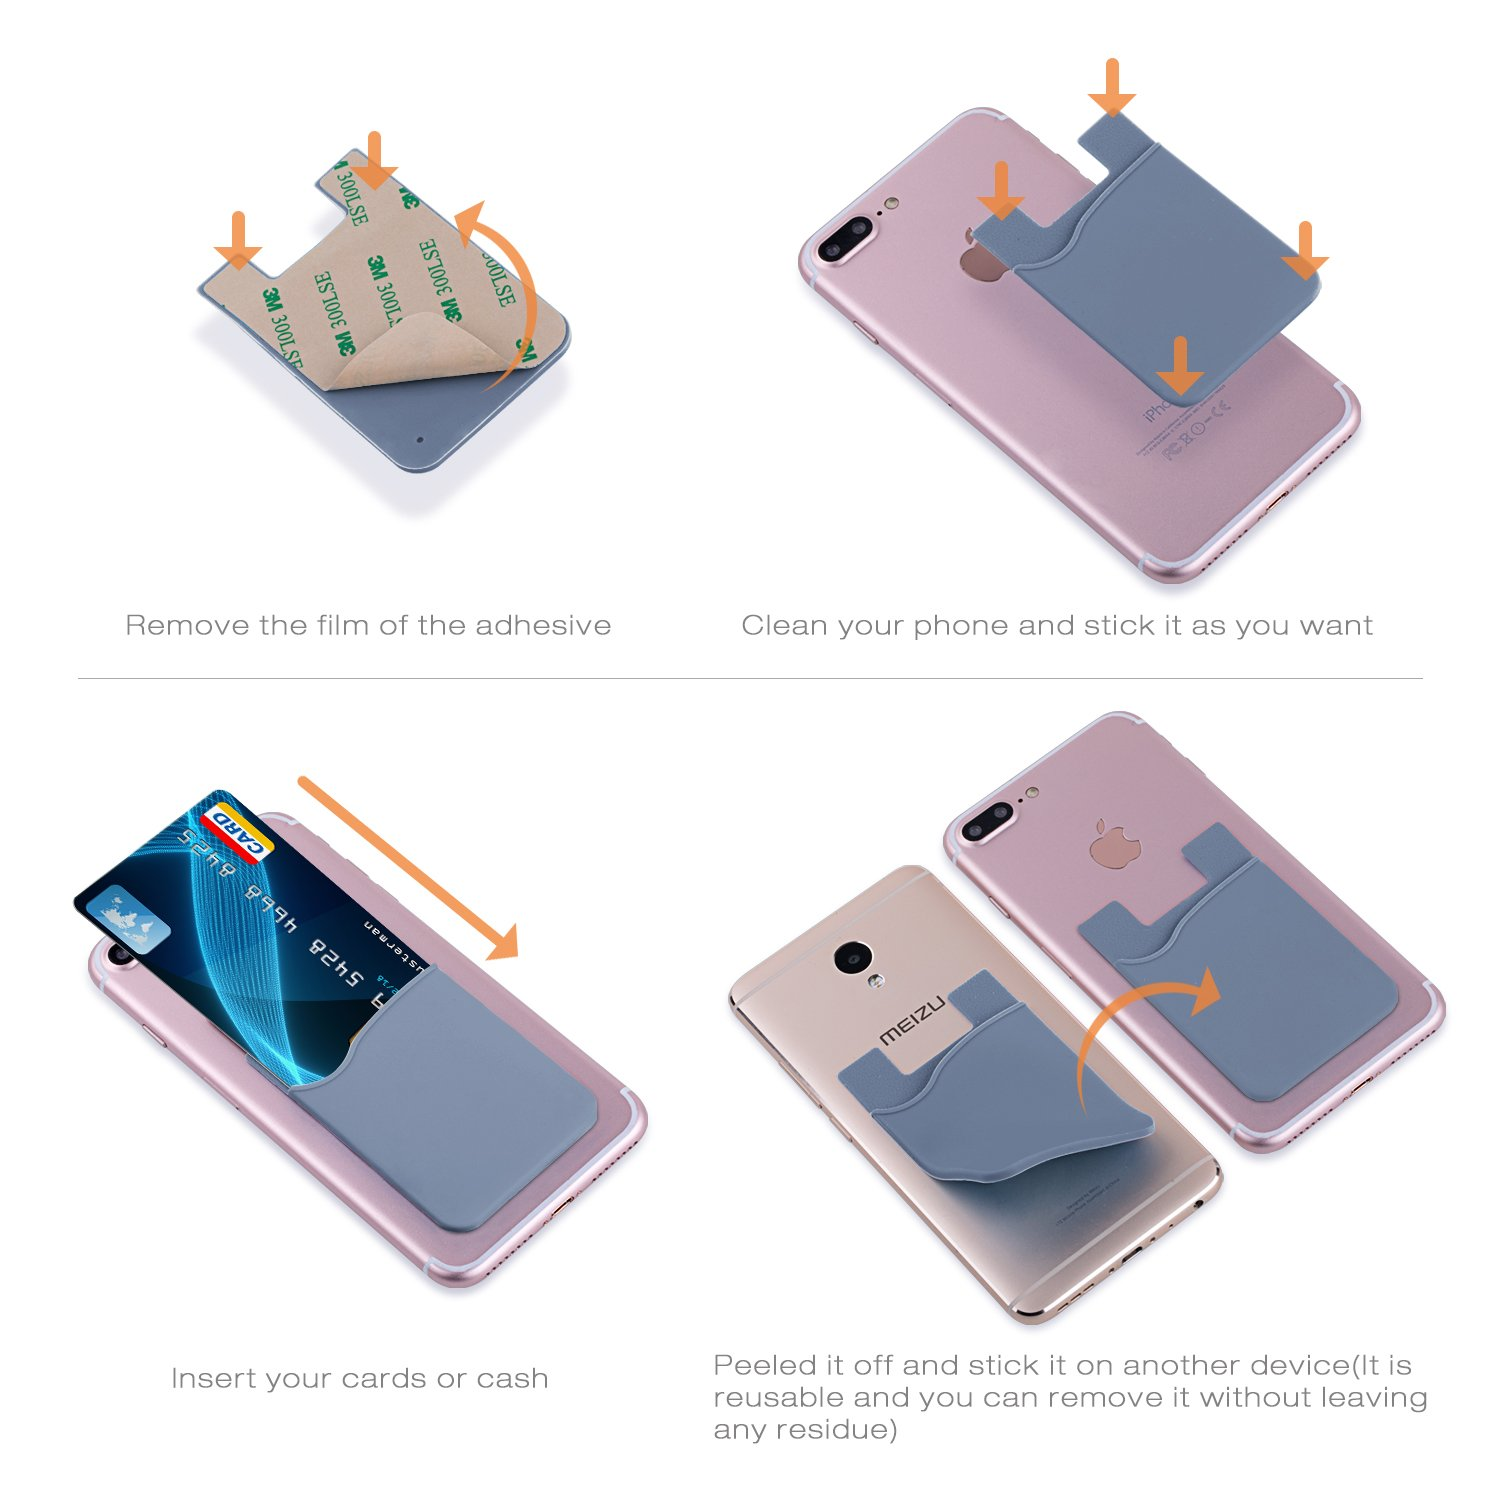 Samsung Galaxy S9 S8 White Gray Pink Purple Green Blue Costyle 6 Pack TPU Silicone Ultra Slim Thin Self Adhesive Stick On Back of Phone Wallet Credit ID Card Holder Pouch Sticker Compatible iPhone X